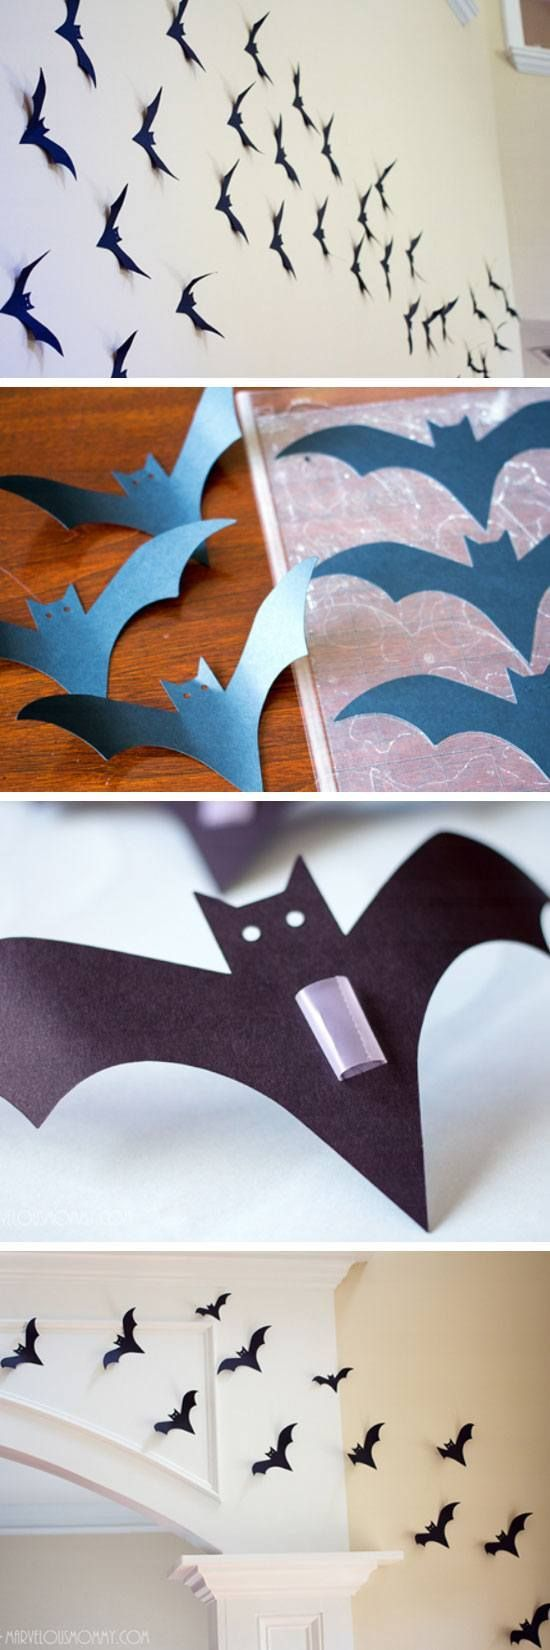 Wall of Bats | Click Pic for 27 DIY Halloween Decorating Ideas for Kids | Easy Halloween Party Decor Ideas for Kids